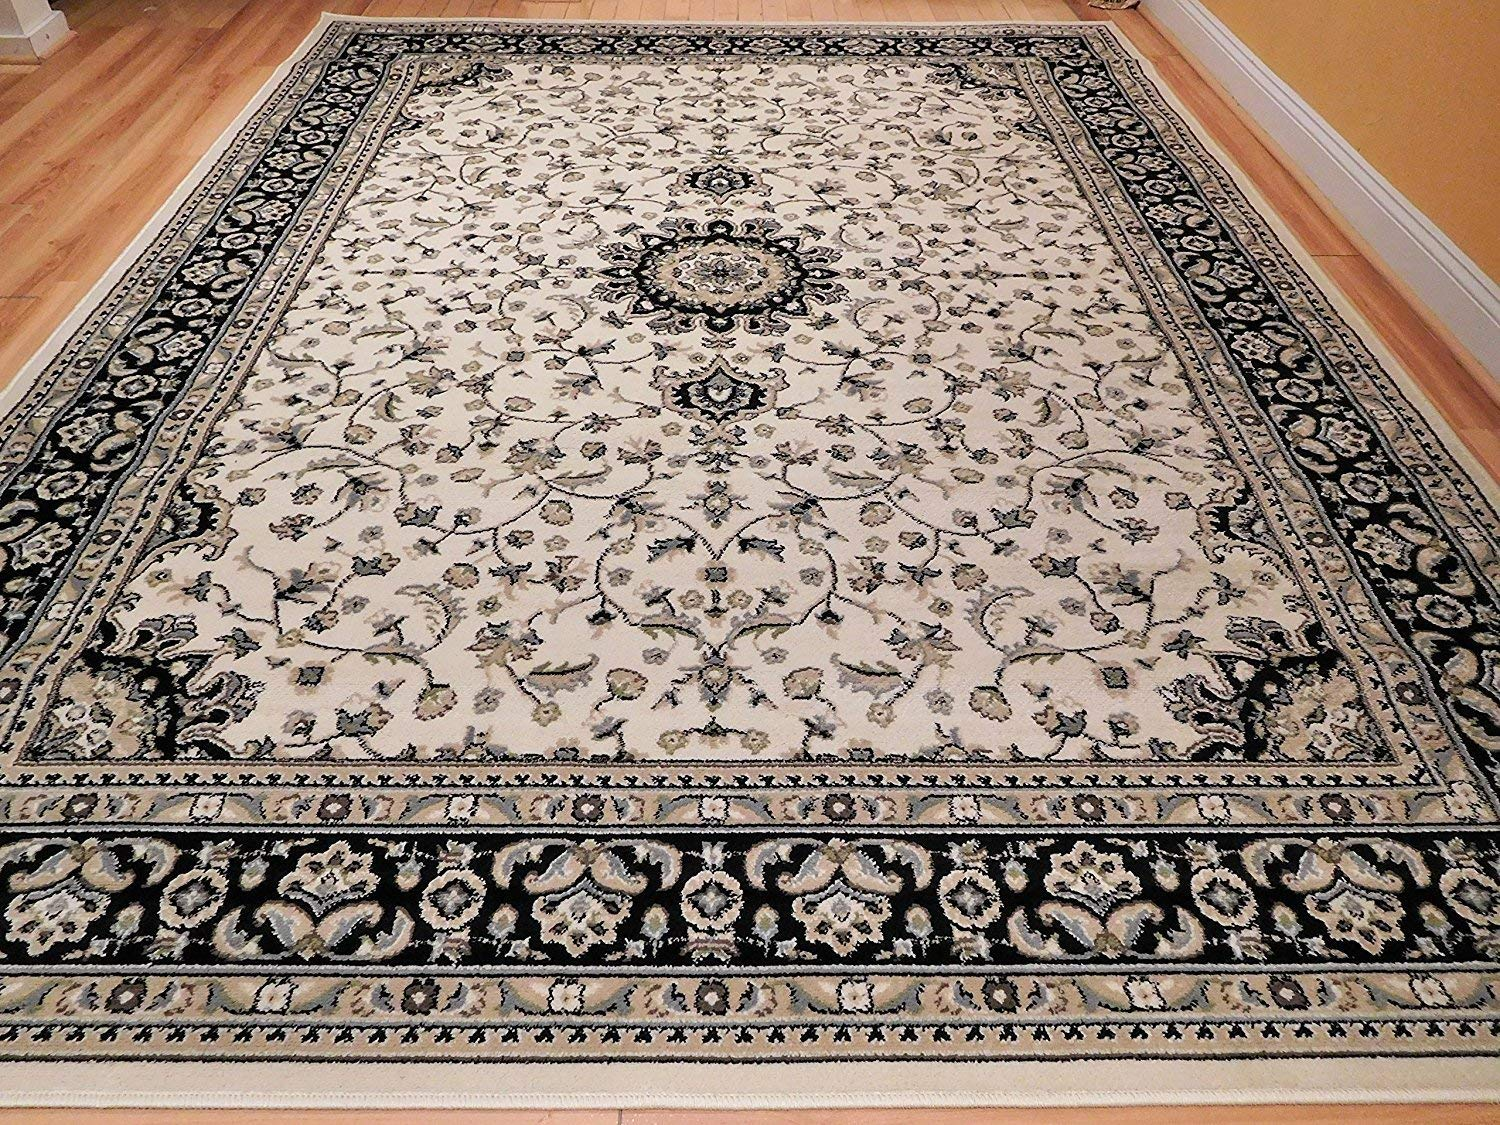 Traditional persian style rugs amazon.com: large 8x11 ivory persian traditional style rug oriental rugs  cream living BEDGUQP